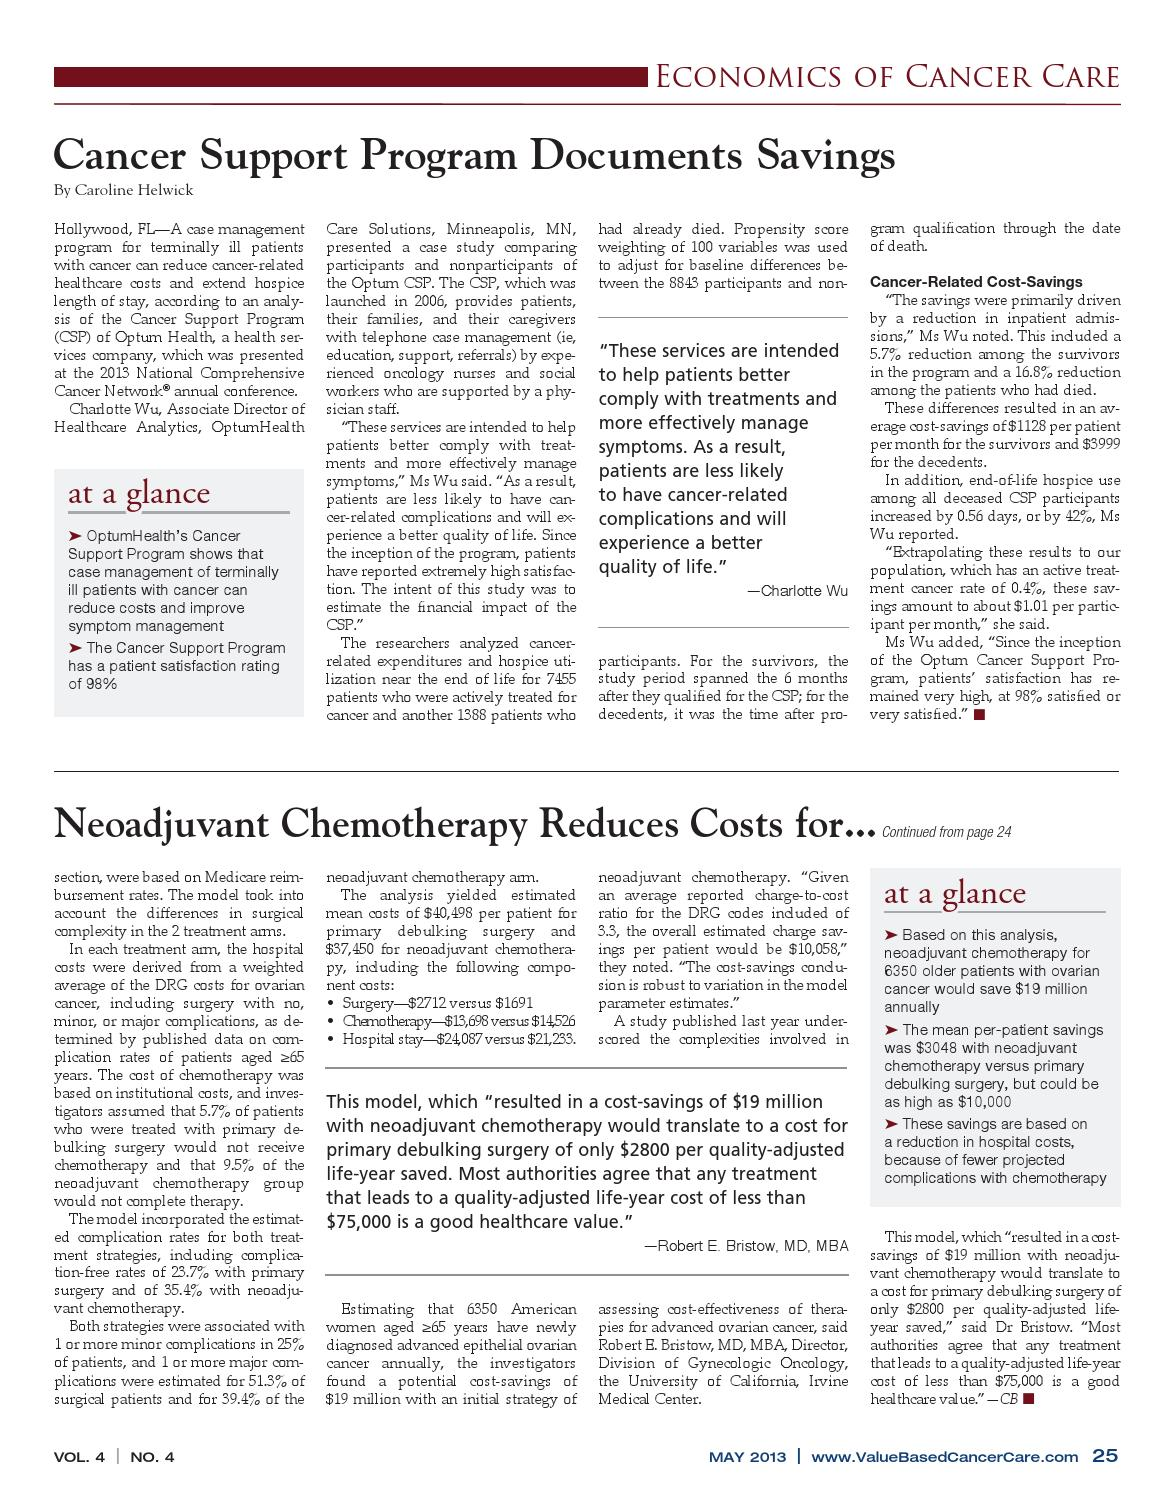 Vbcc May 2013 Vol 4 No 4 By Value Based Cancer Care Issuu